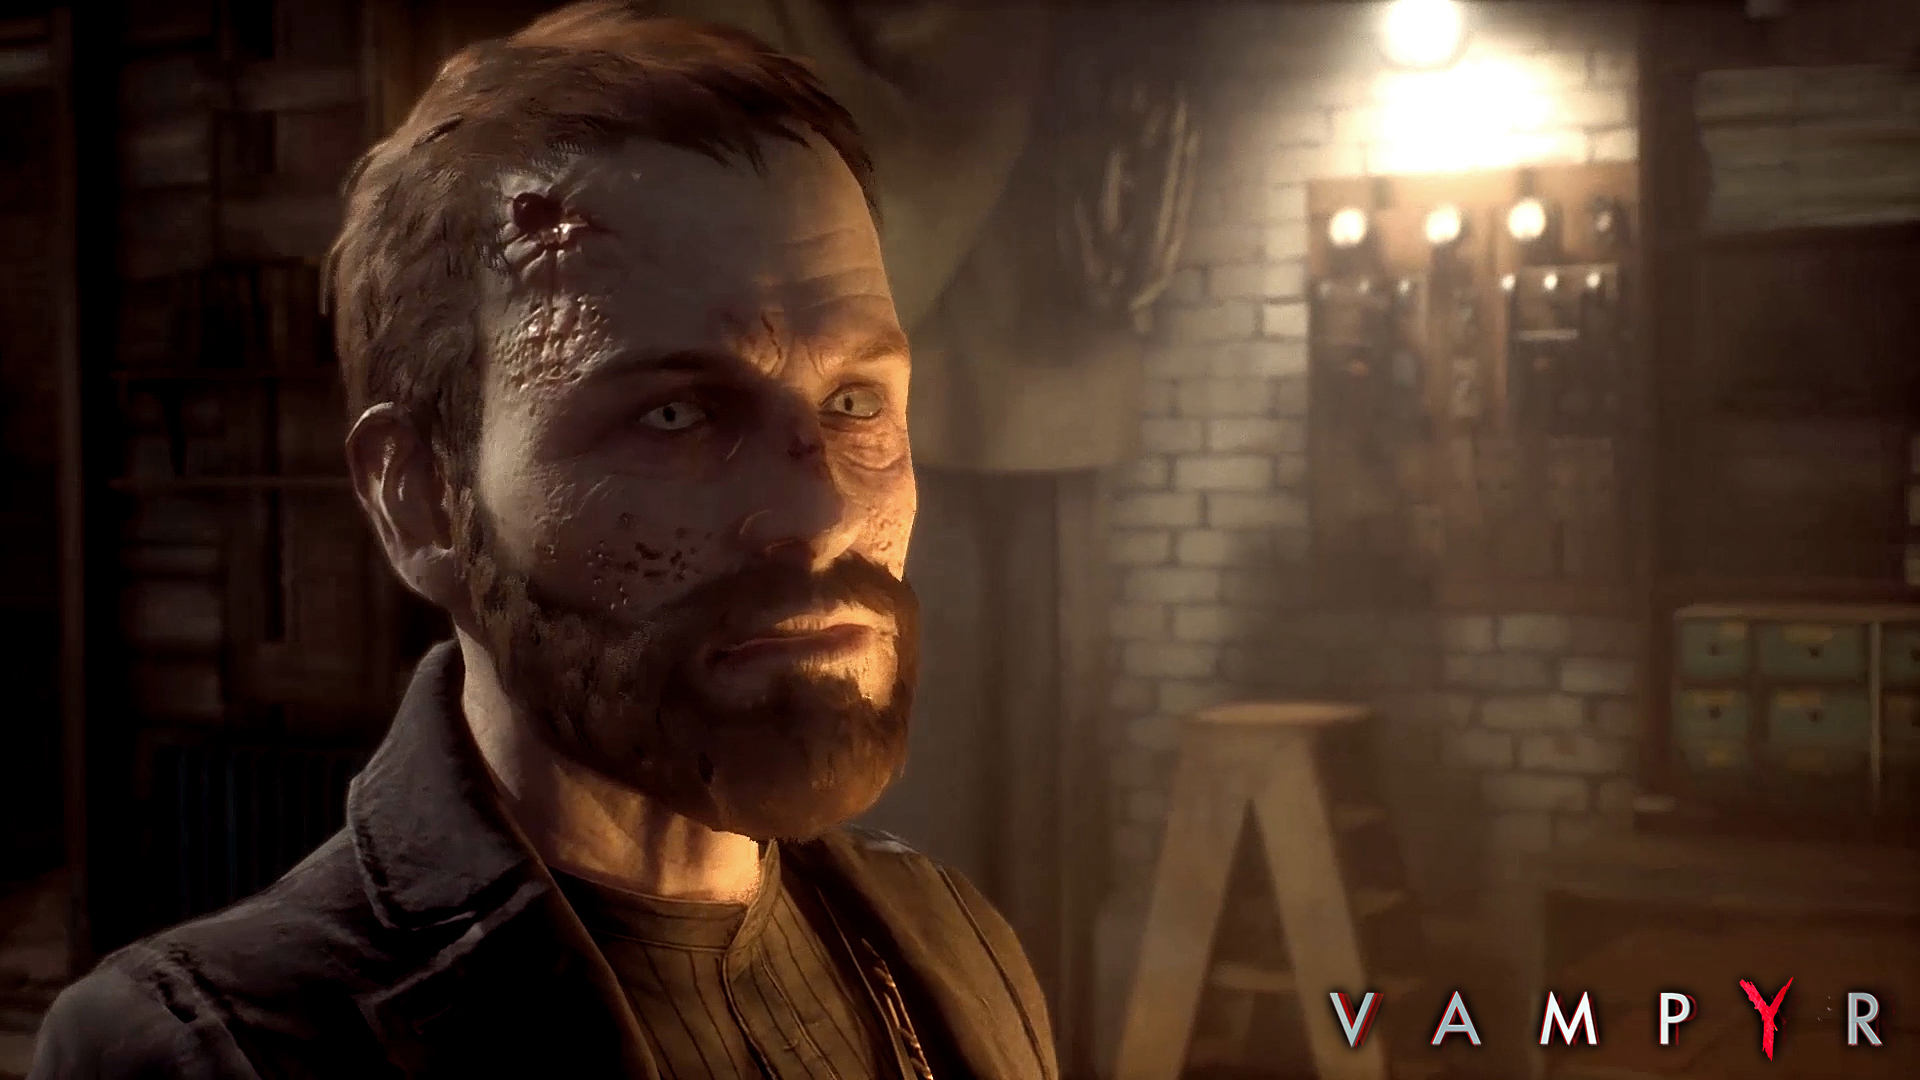 8b96edf2ccf Vampyr is a game that many people have been excited to play for quite a  while now. The game was delayed from its initial release date to June 5 of  this year ...